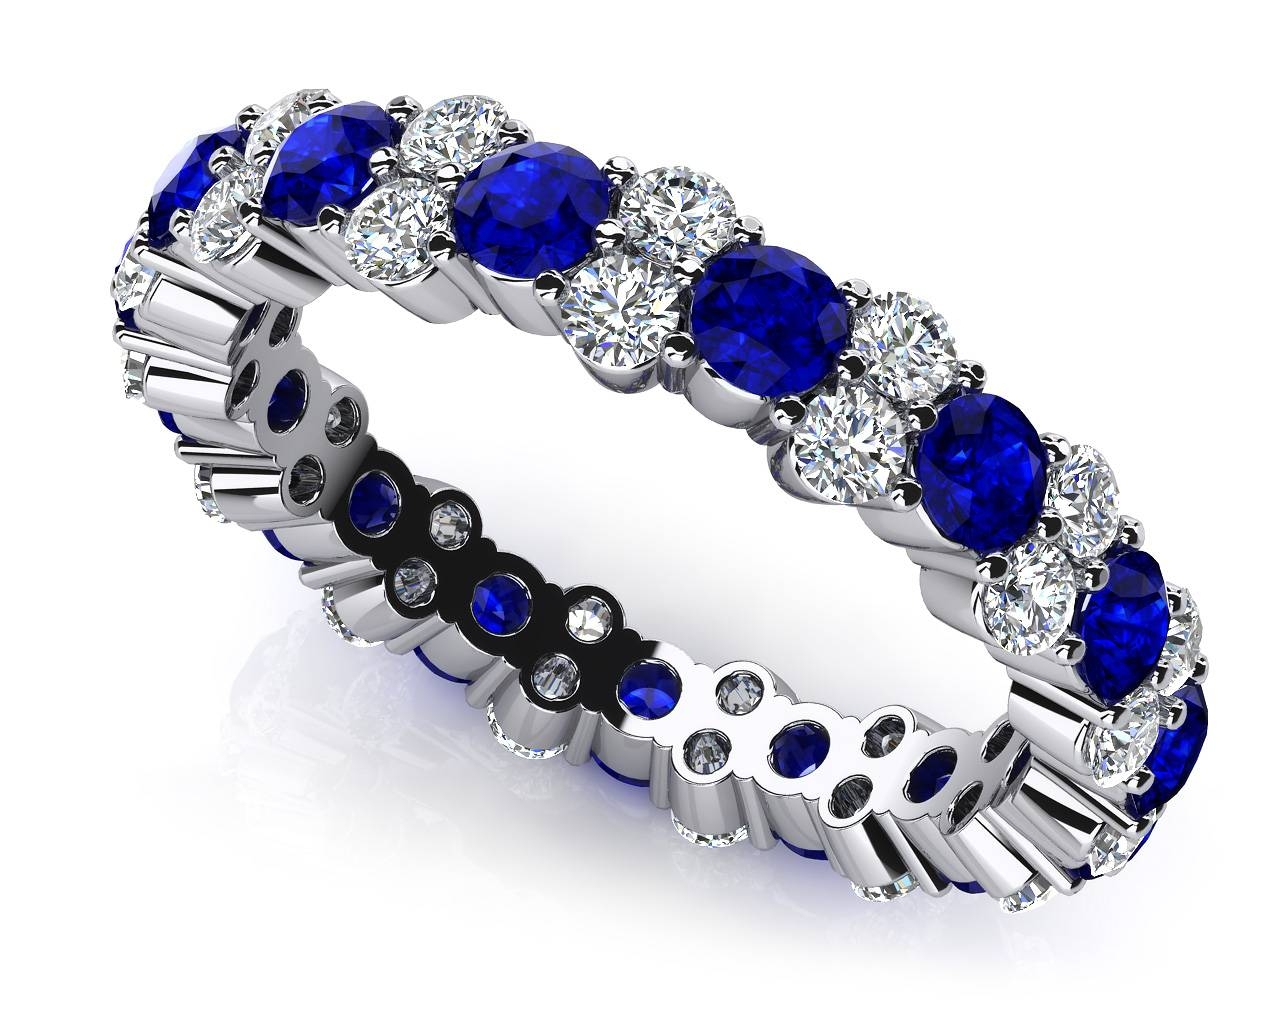 Design Your Own Diamond Anniversary Ring & Eternity Ring With Regard To Latest Sapphire Anniversary Rings (View 8 of 25)